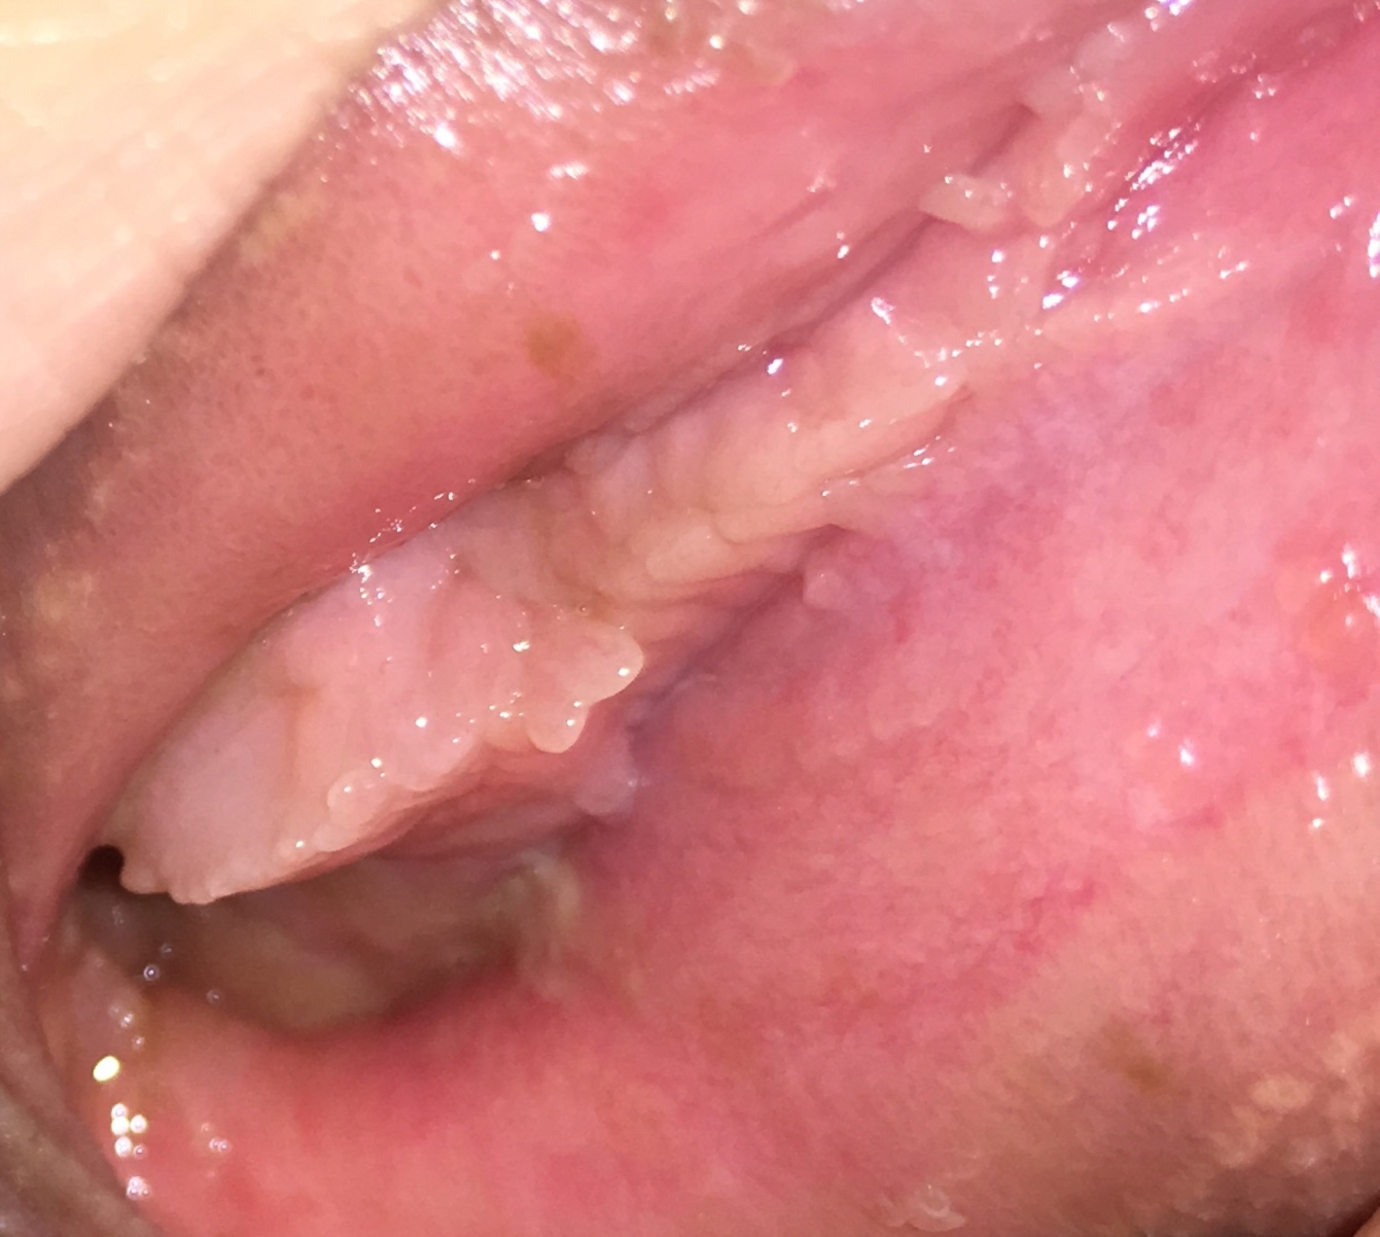 vestibular papillomatosis compared to genital warts